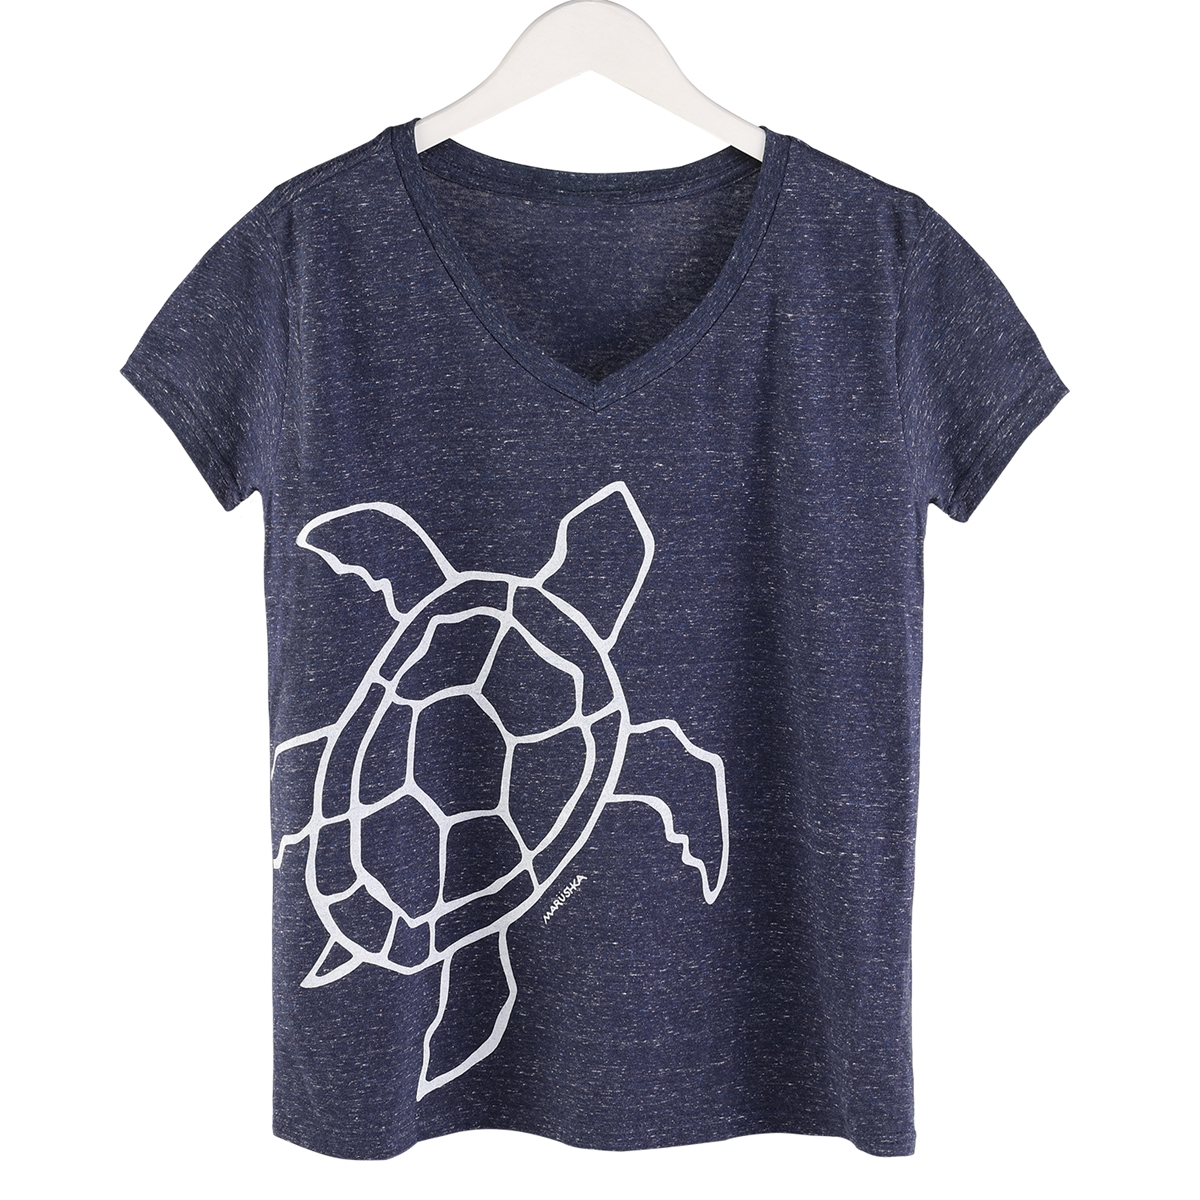 Big Sea Turtle Tee